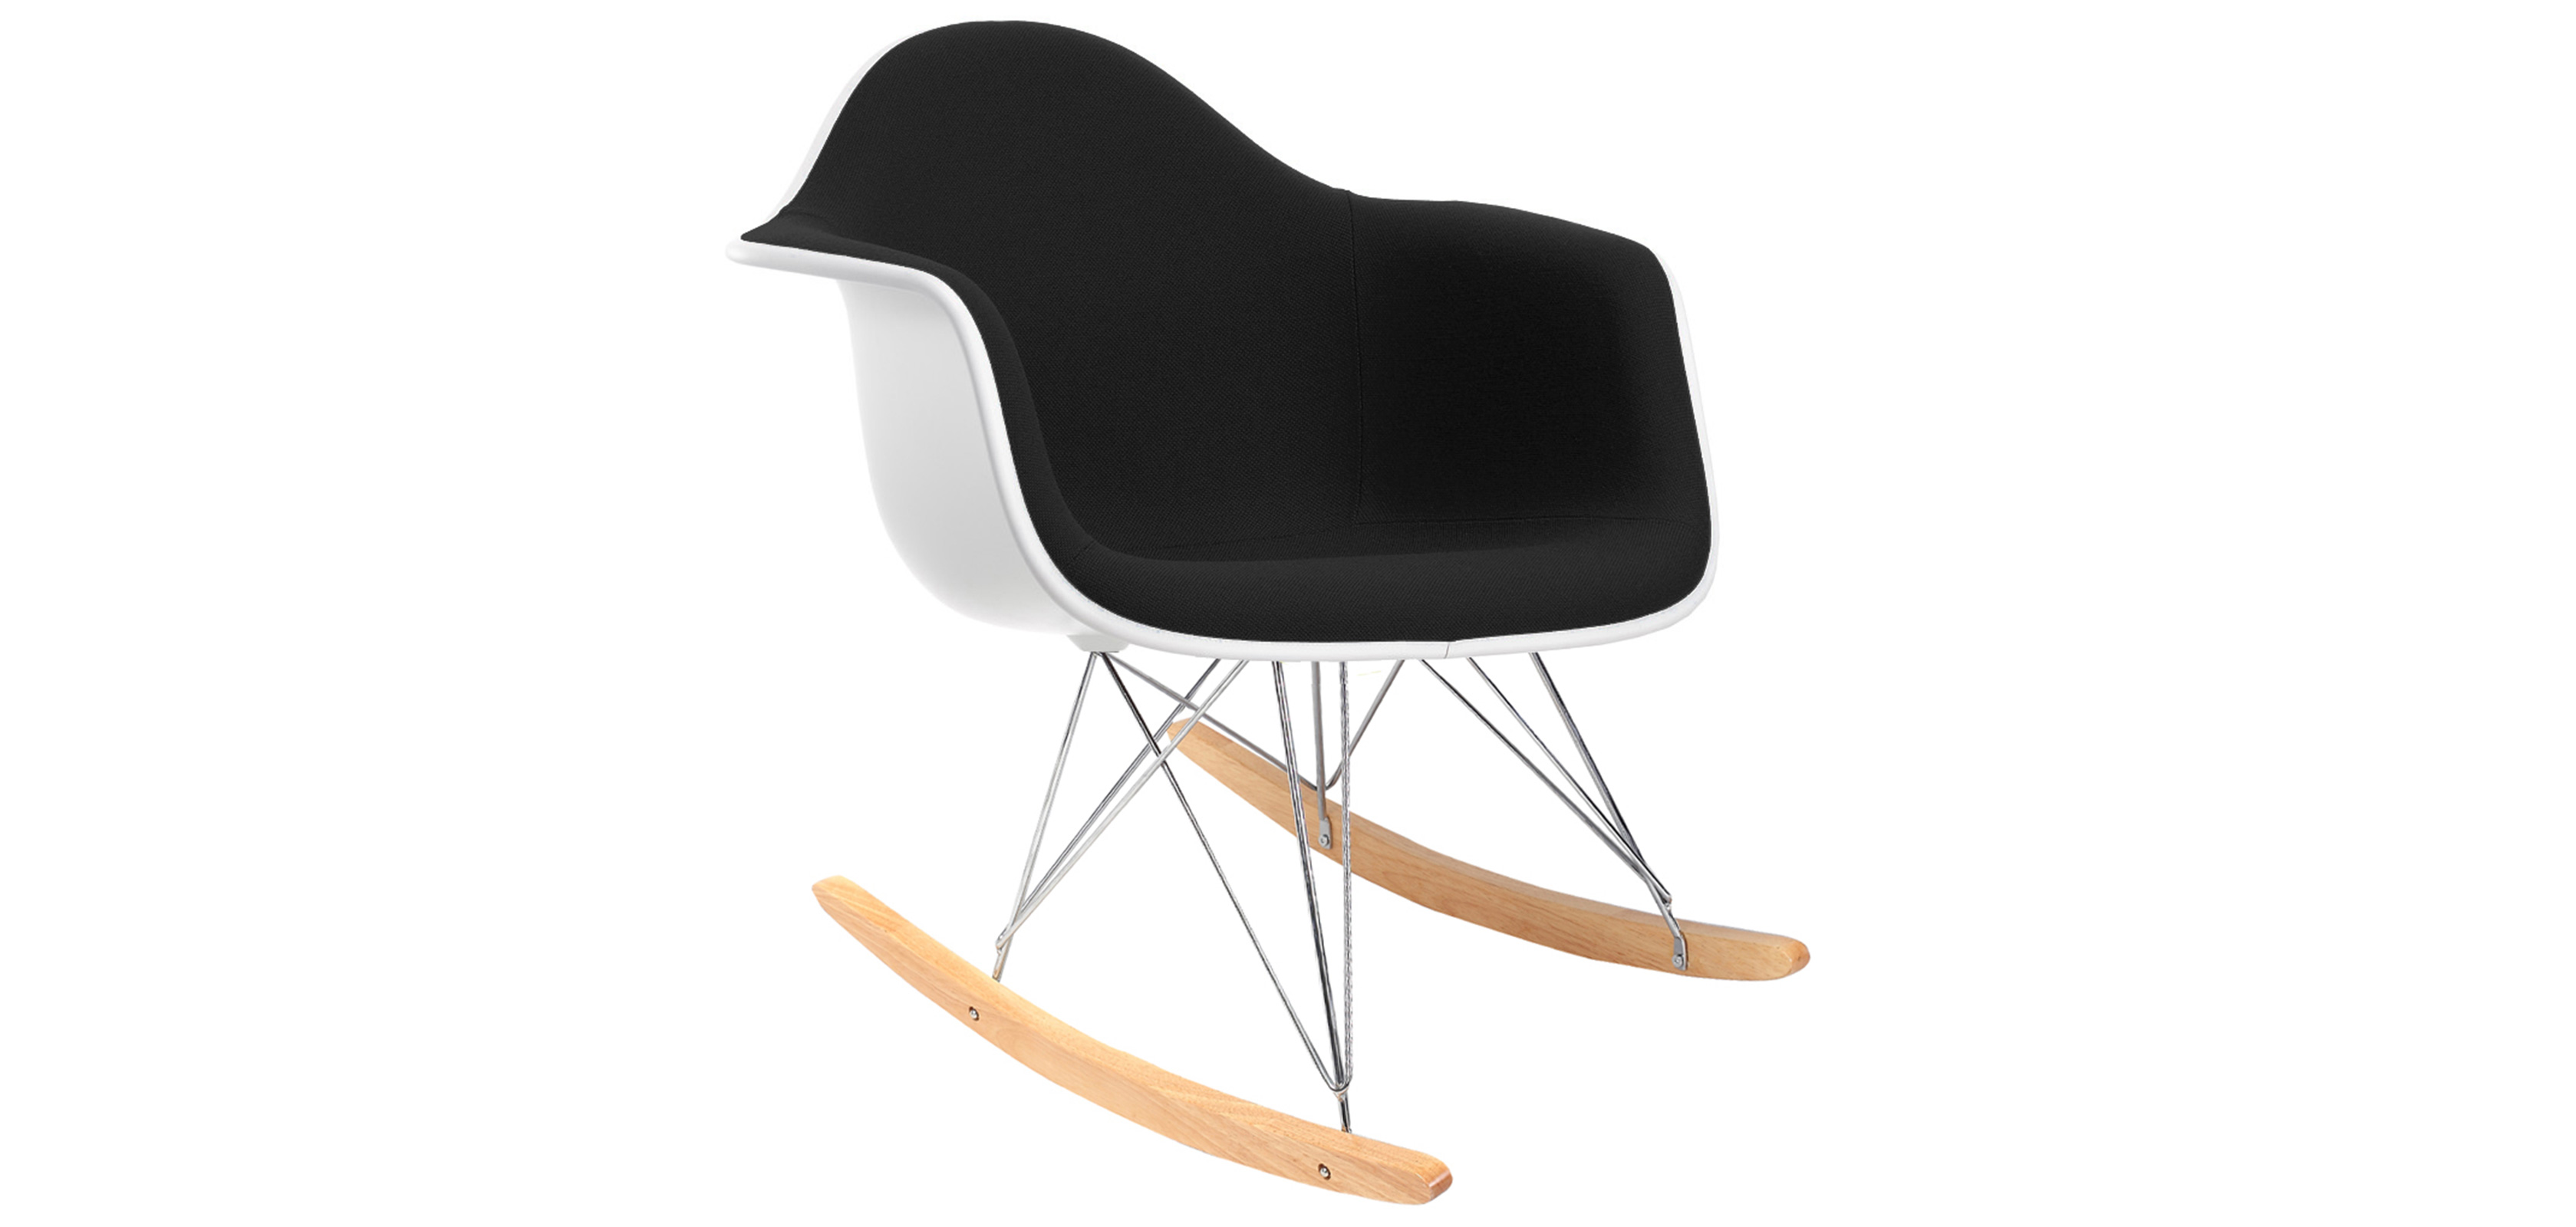 chaise eames moins cher id e inspirante pour la conception de la maison. Black Bedroom Furniture Sets. Home Design Ideas